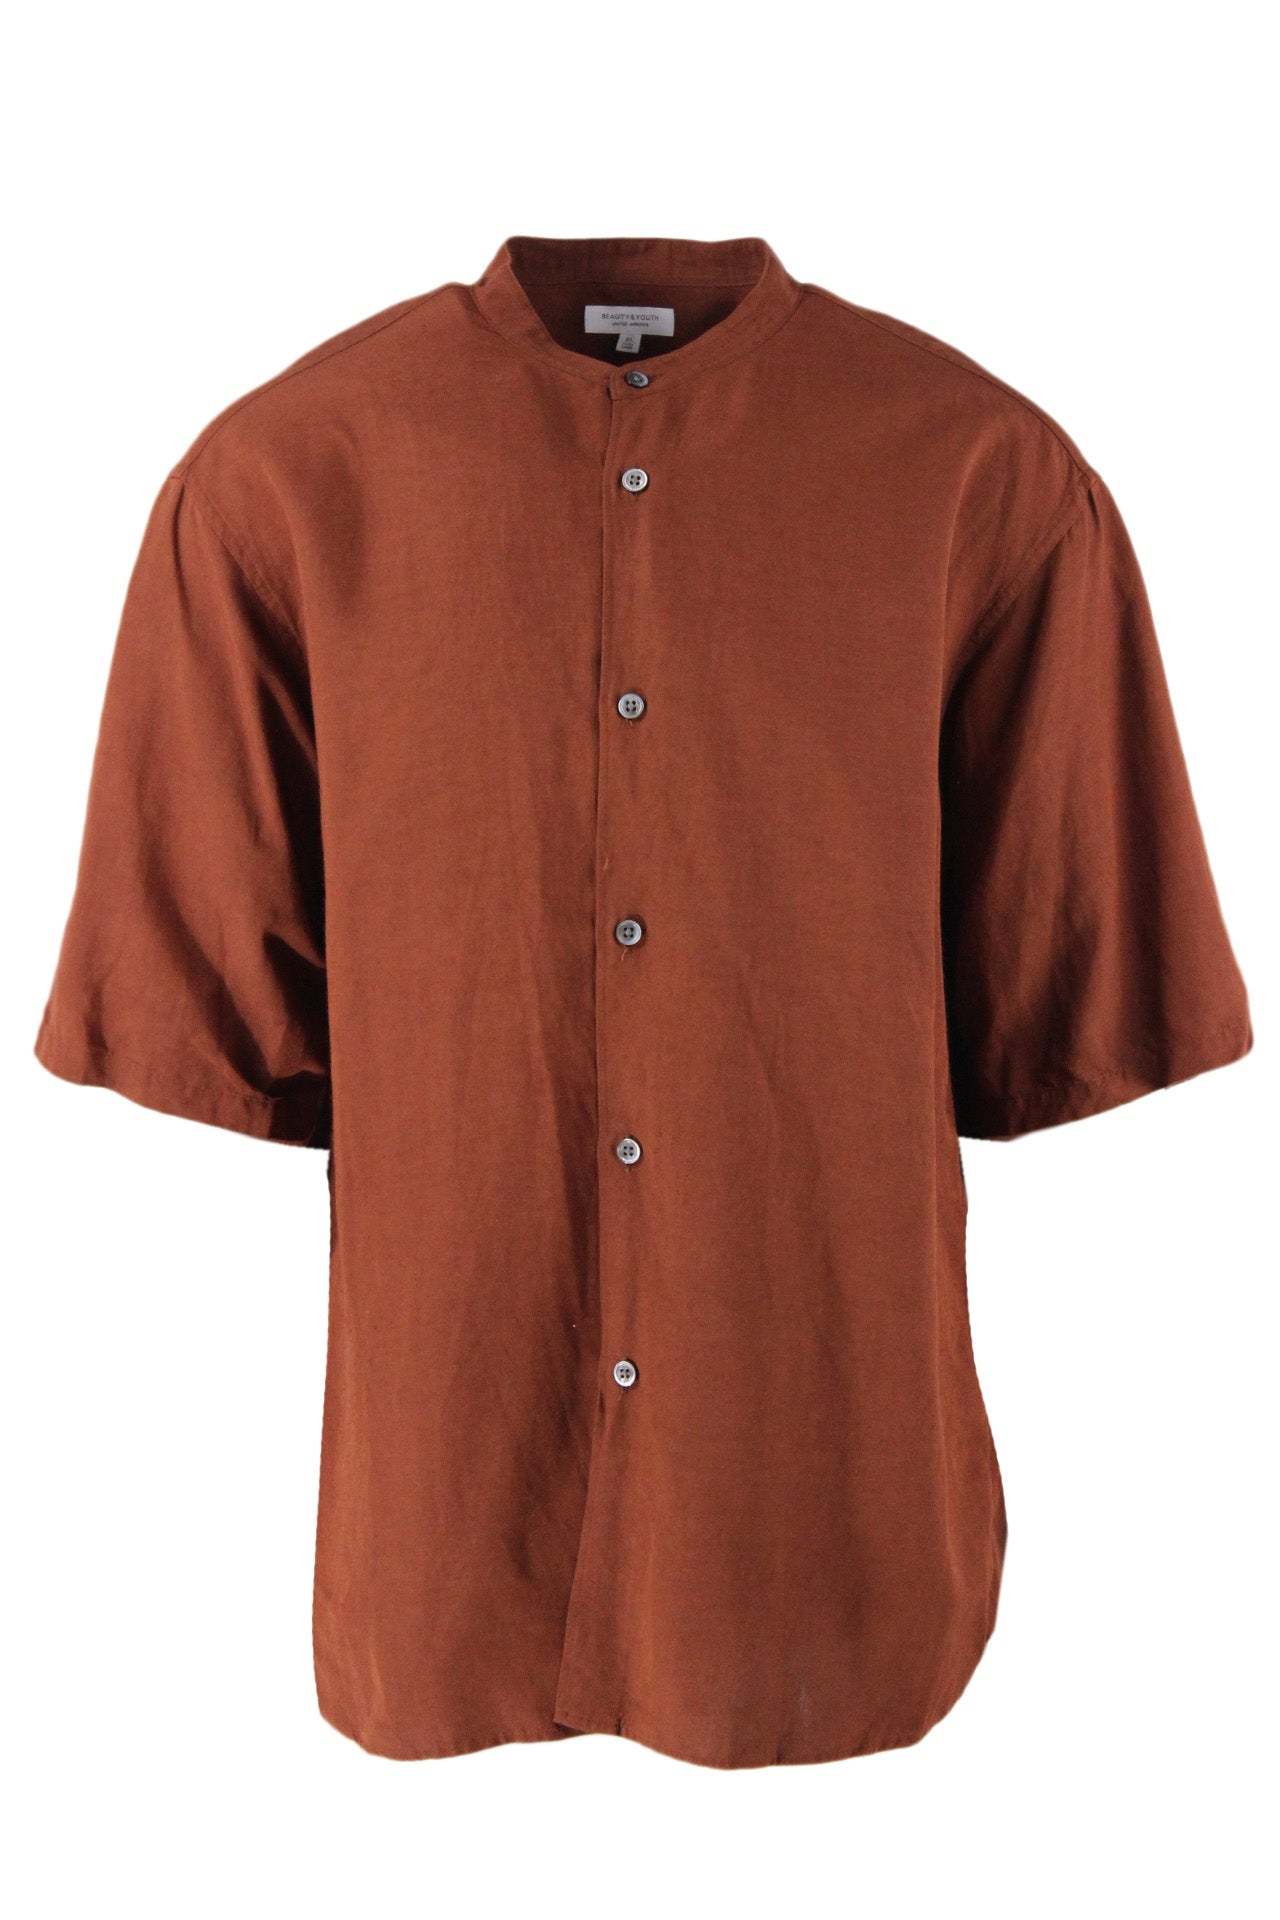 beauty&youth russet short sleeve button down shirt. features band collar and decorative back pleat in a boxy cut. iridescent silver button closure, rounded hem.